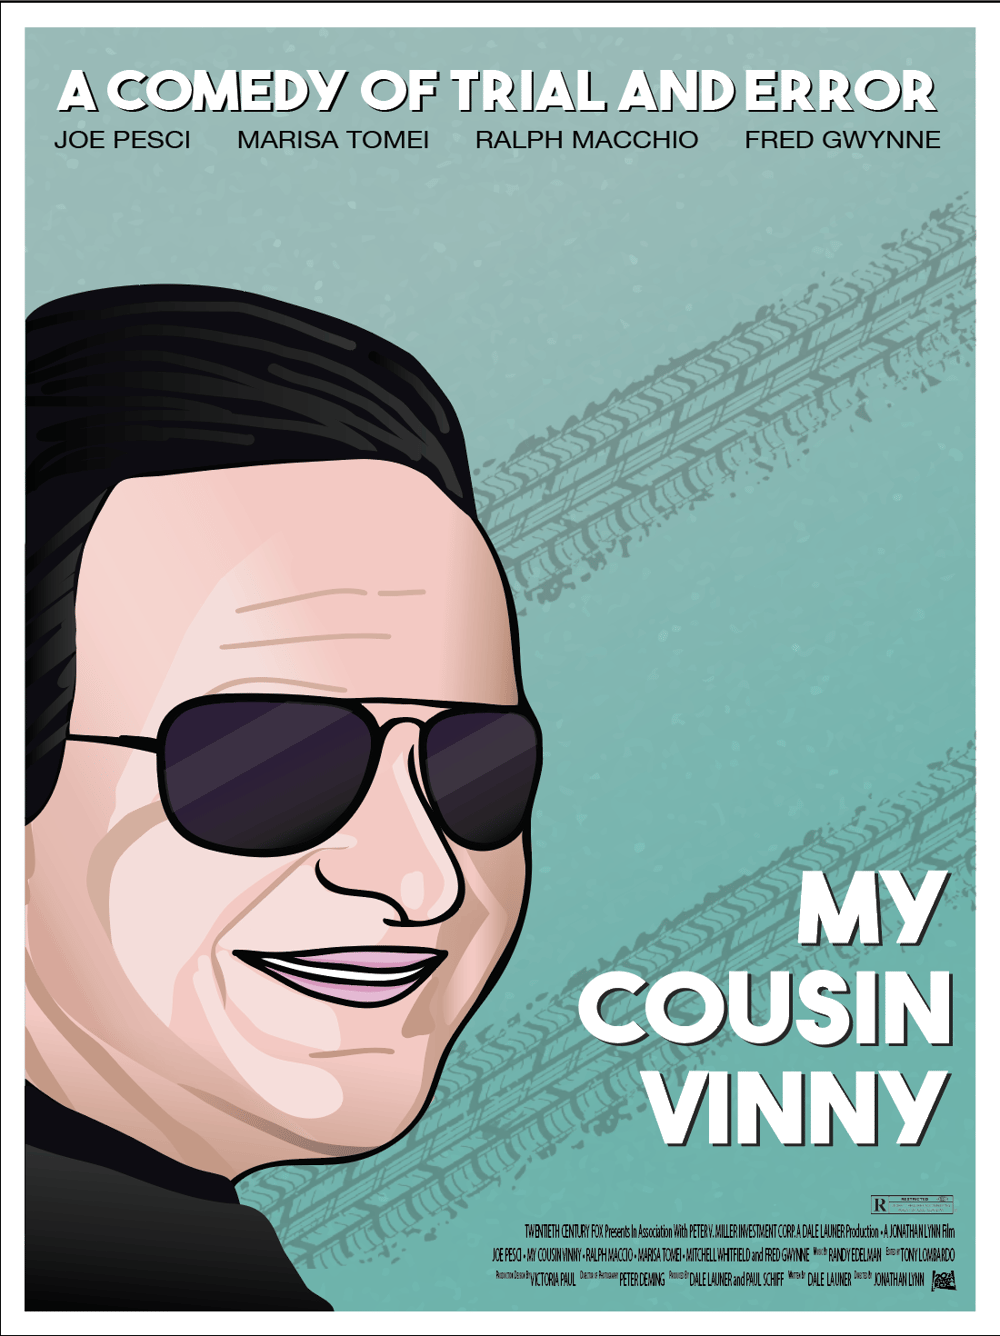 Retro Movie Poster - My Cousin Vinny - image 1 - student project